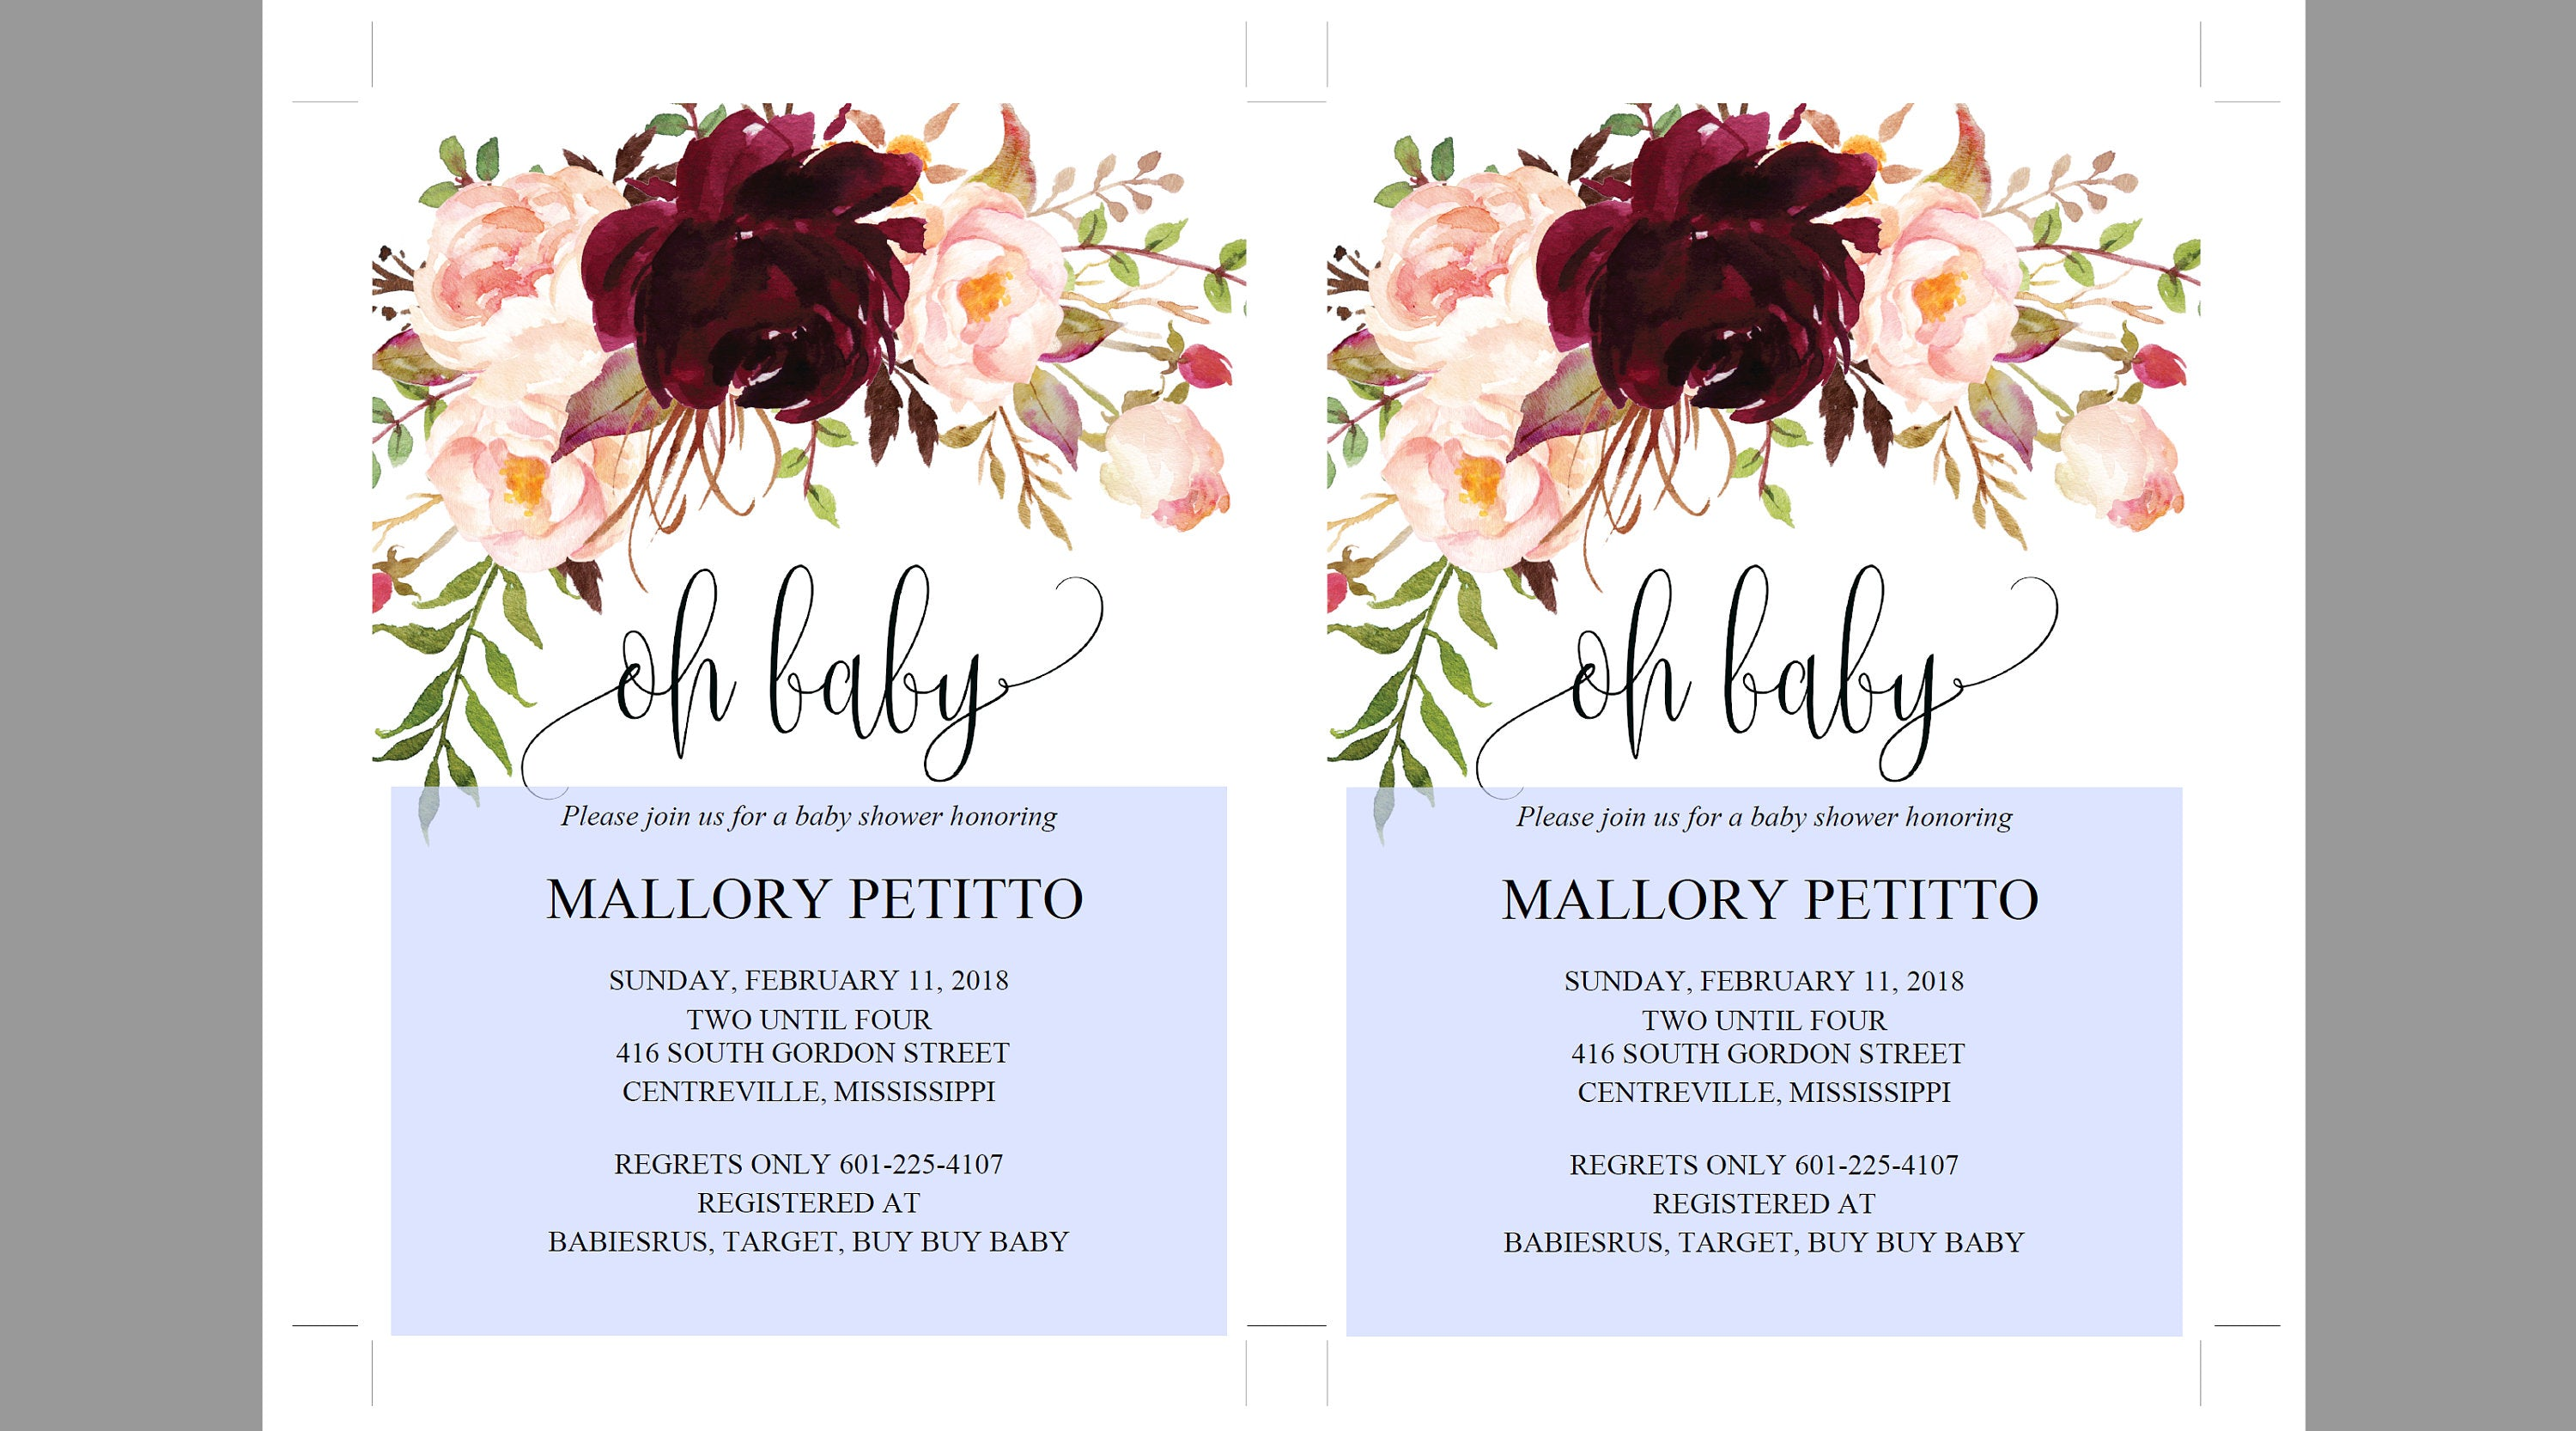 Printable Baby Shower Invitation Template, Oh Baby, Baby Shower invite, Invitation, Baby Shower Invites,Invite, Burgundy - MPU78